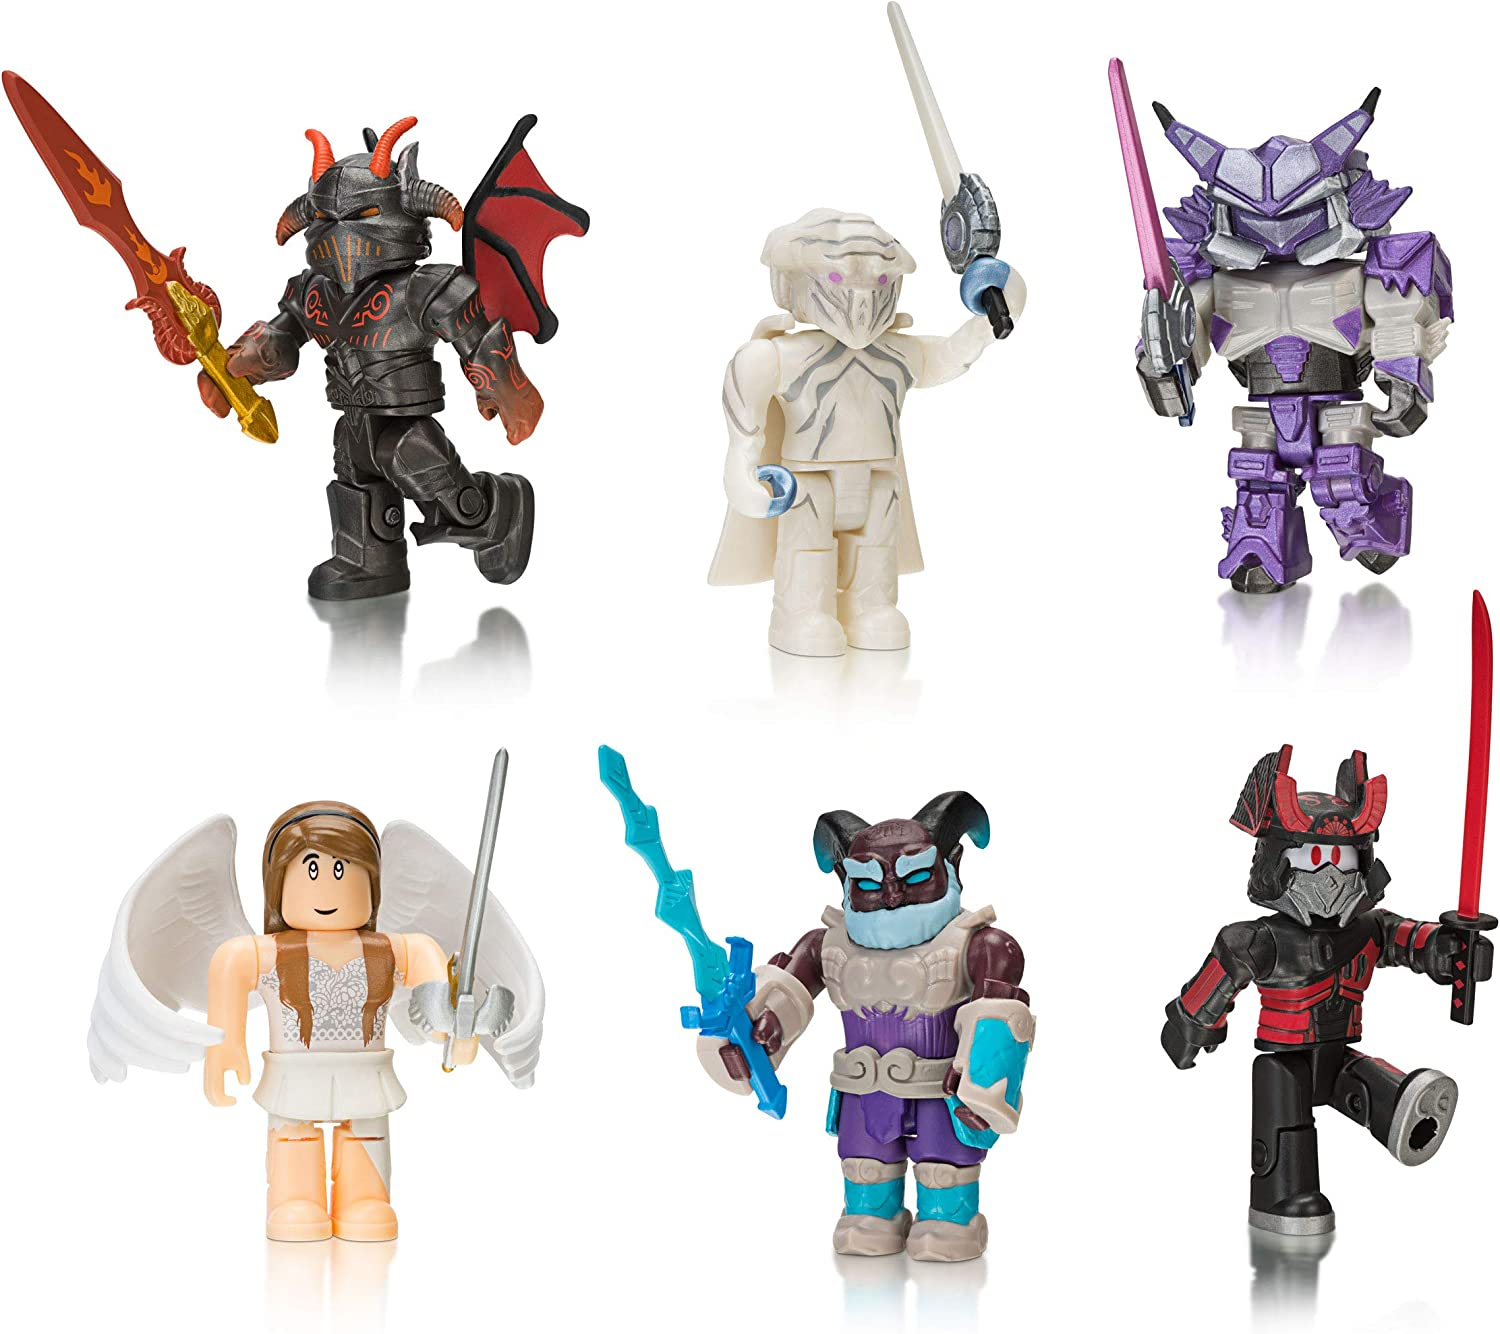 Space Warfare Tycoon Game Passes In Store Roblox Amazon Com Roblox Action Collection Summoner Tycoon Six Figure Pack Includes Exclusive Virtual Item Toys Games